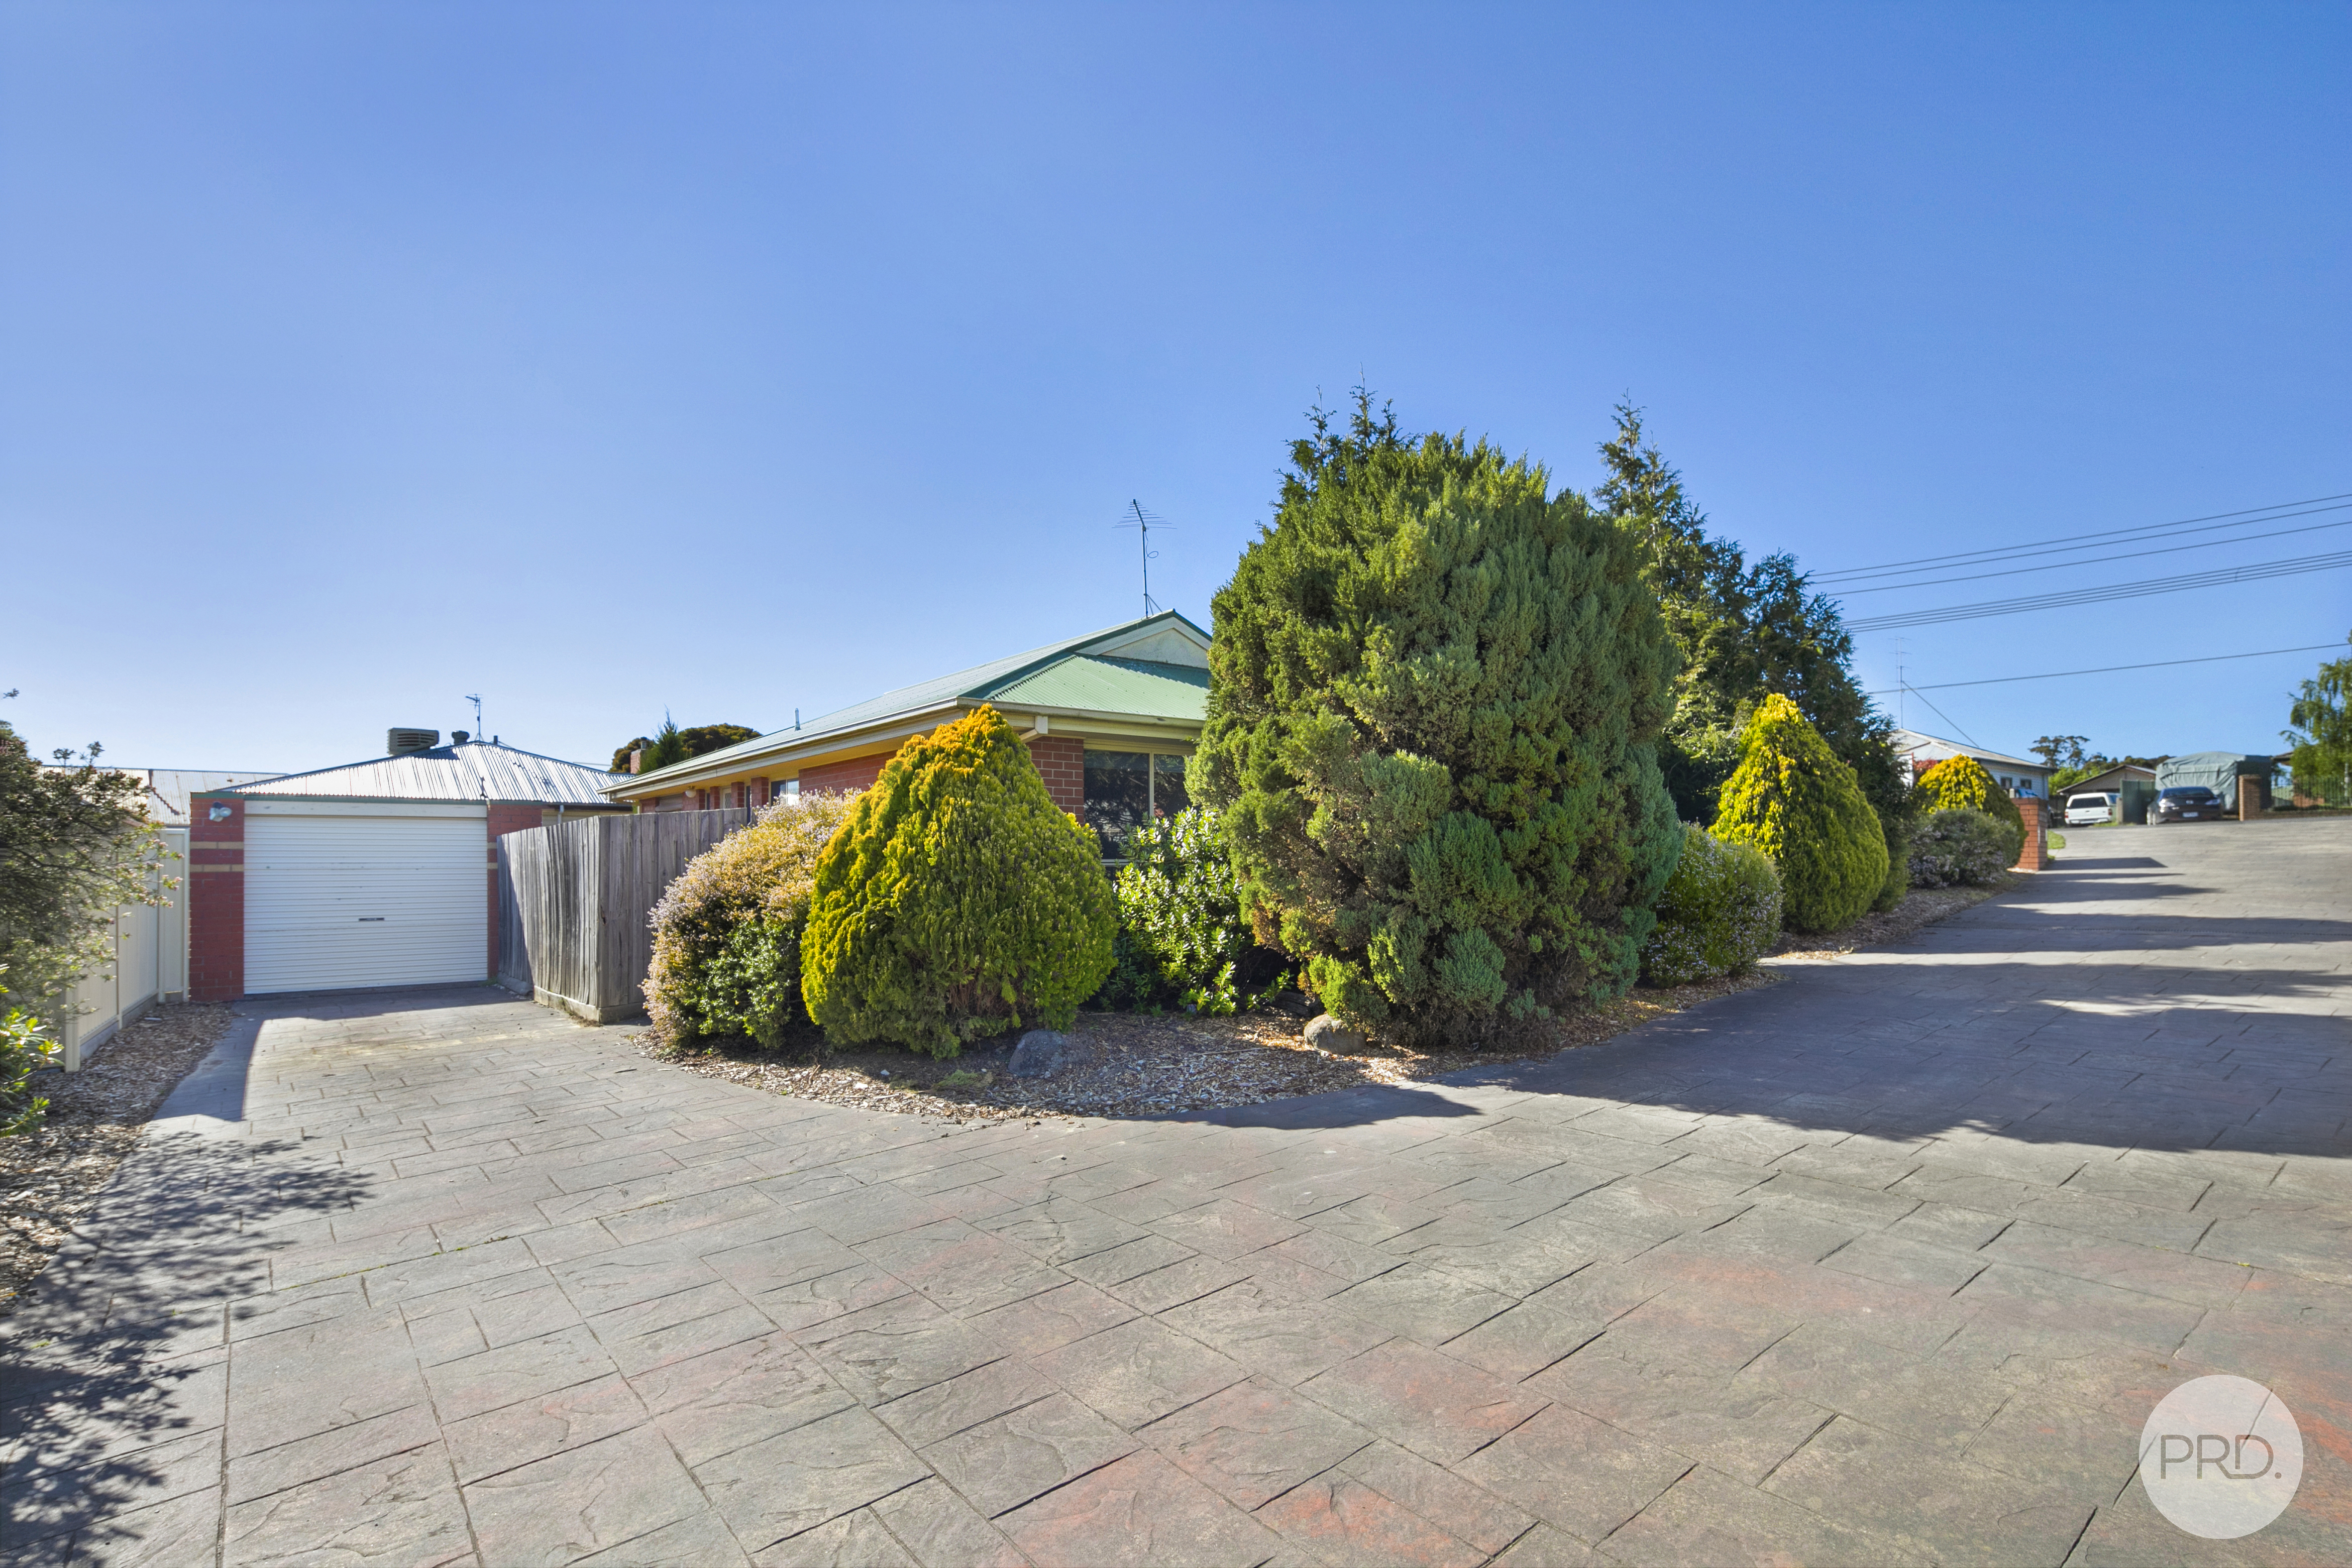 106, Whitehorse Rd, MOUNT CLEAR, VIC 3350